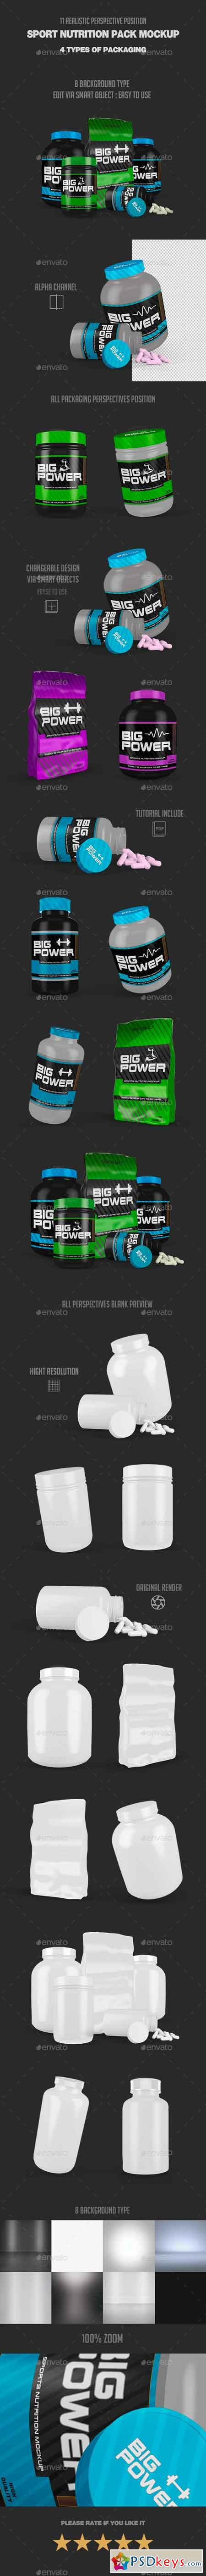 Sport Nutrition Pack Mock Up 21323112